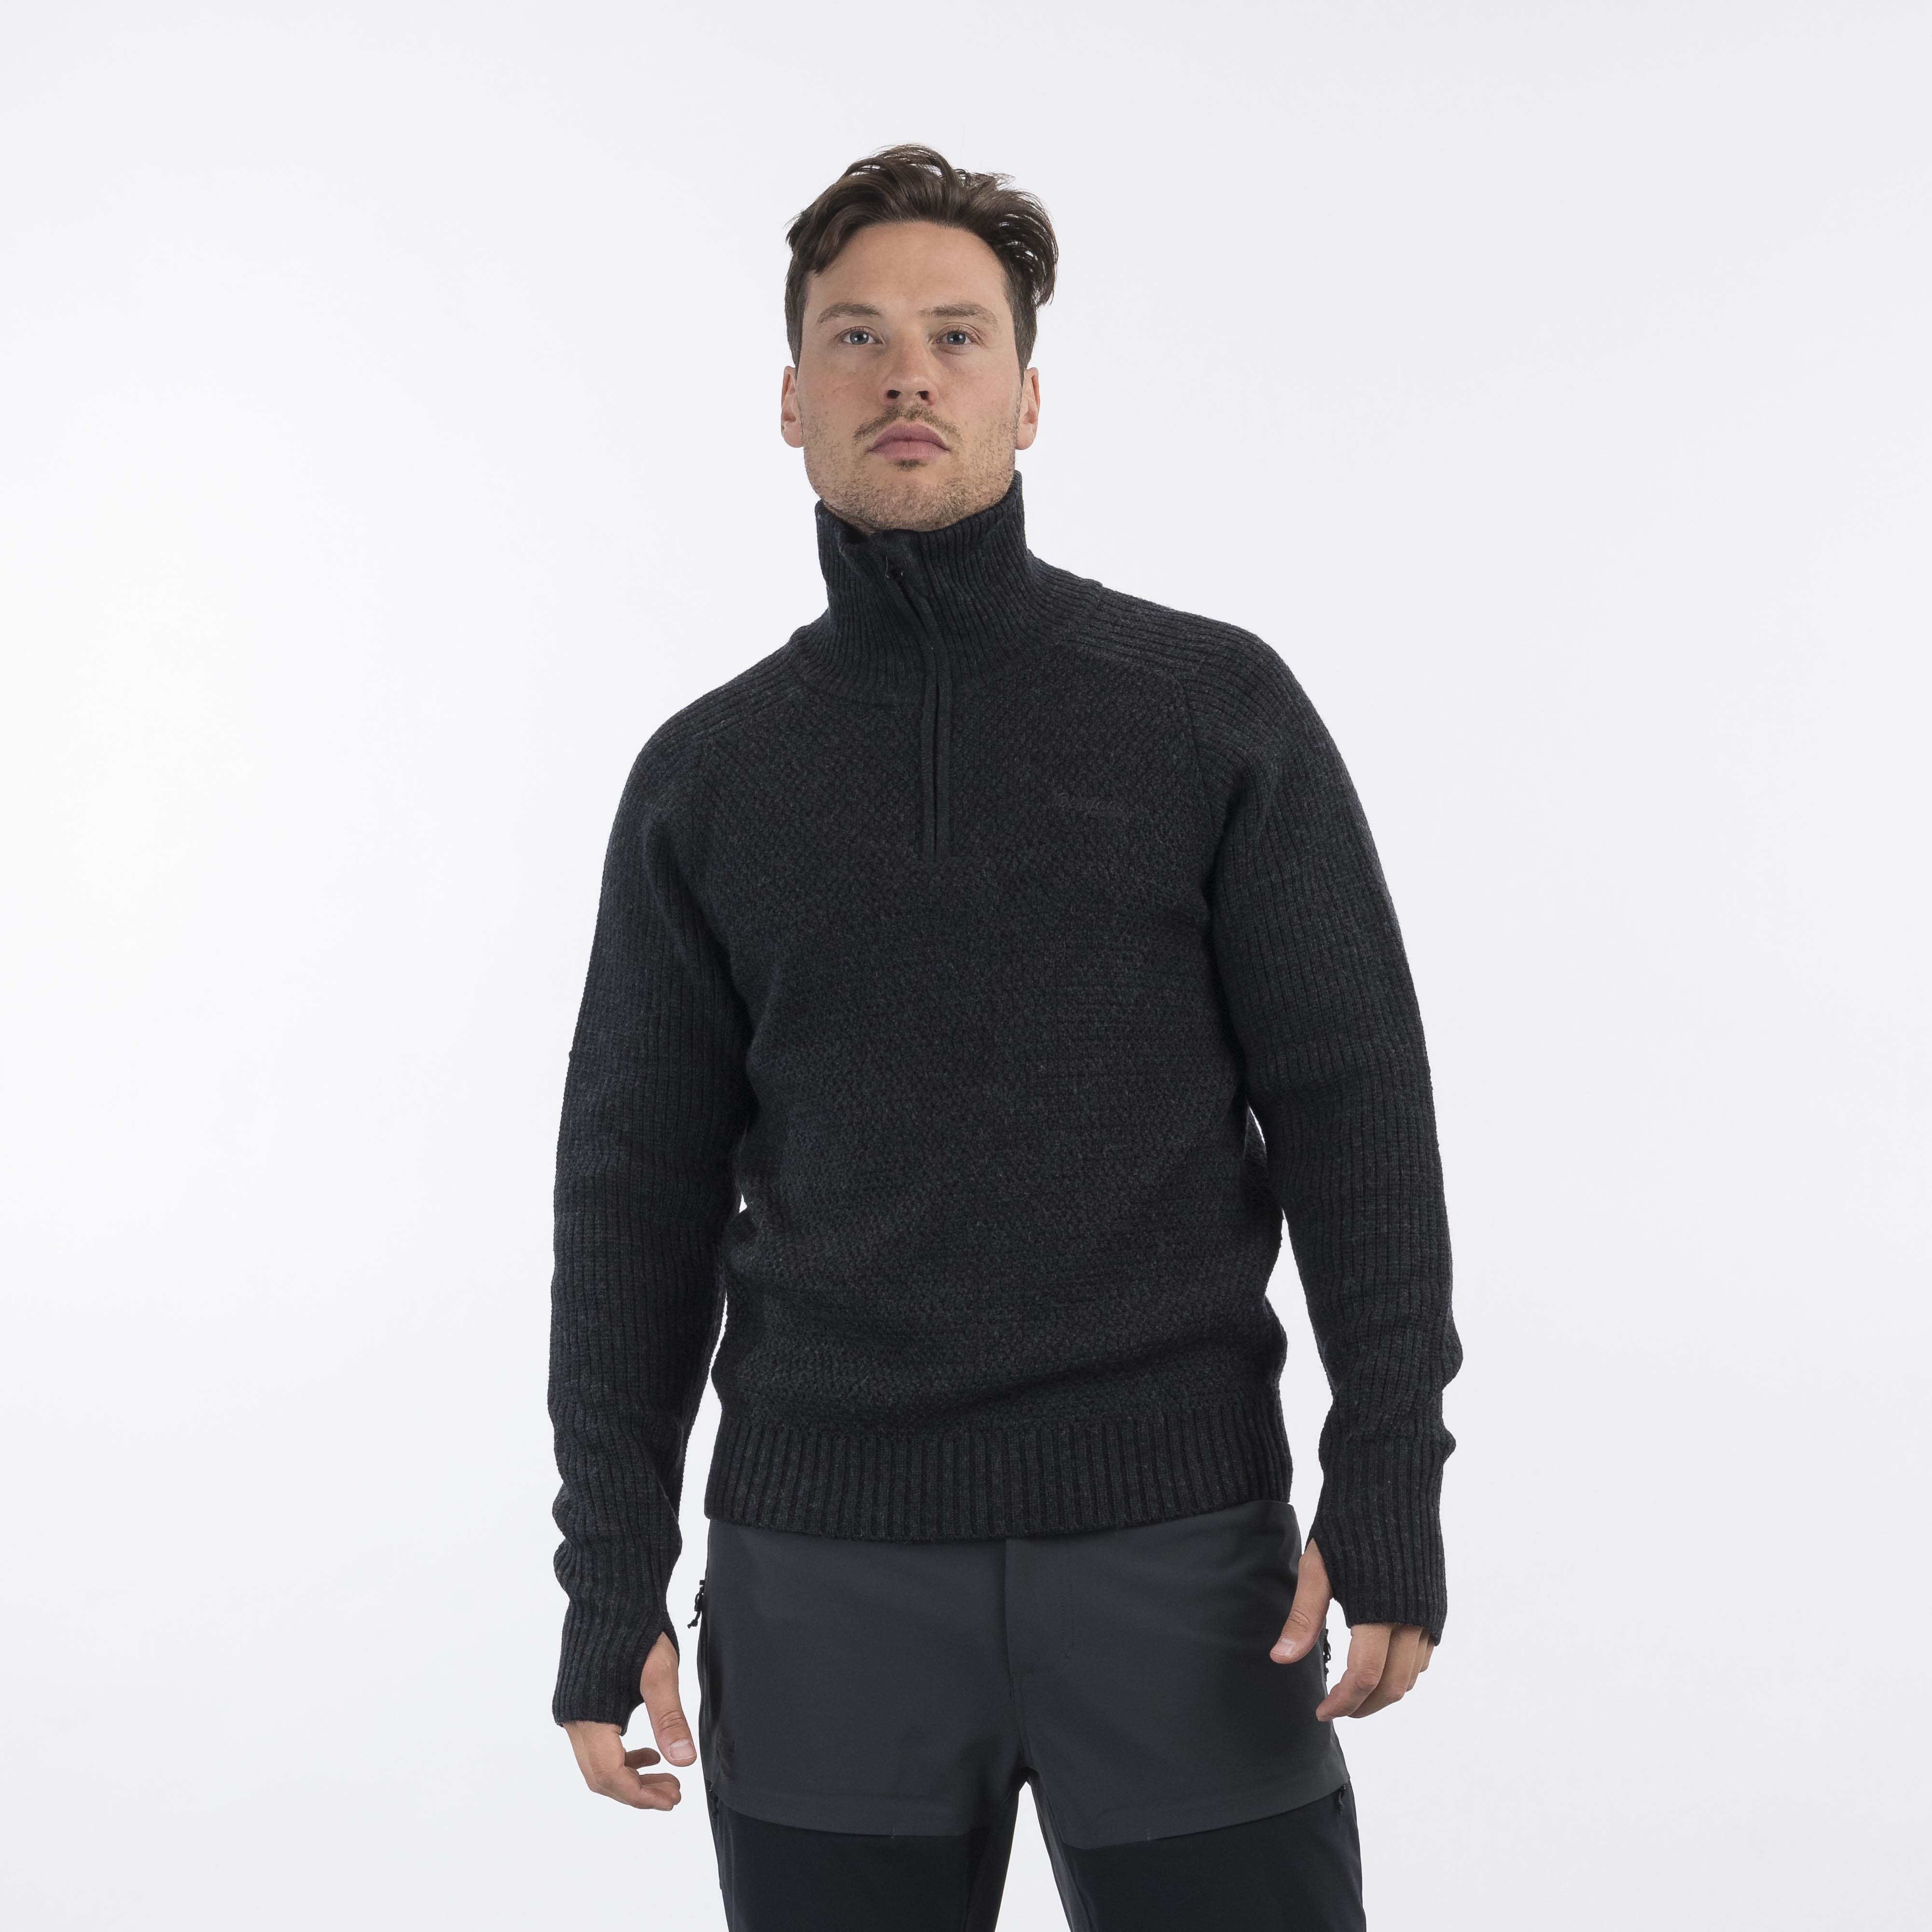 Ulriken Jumper